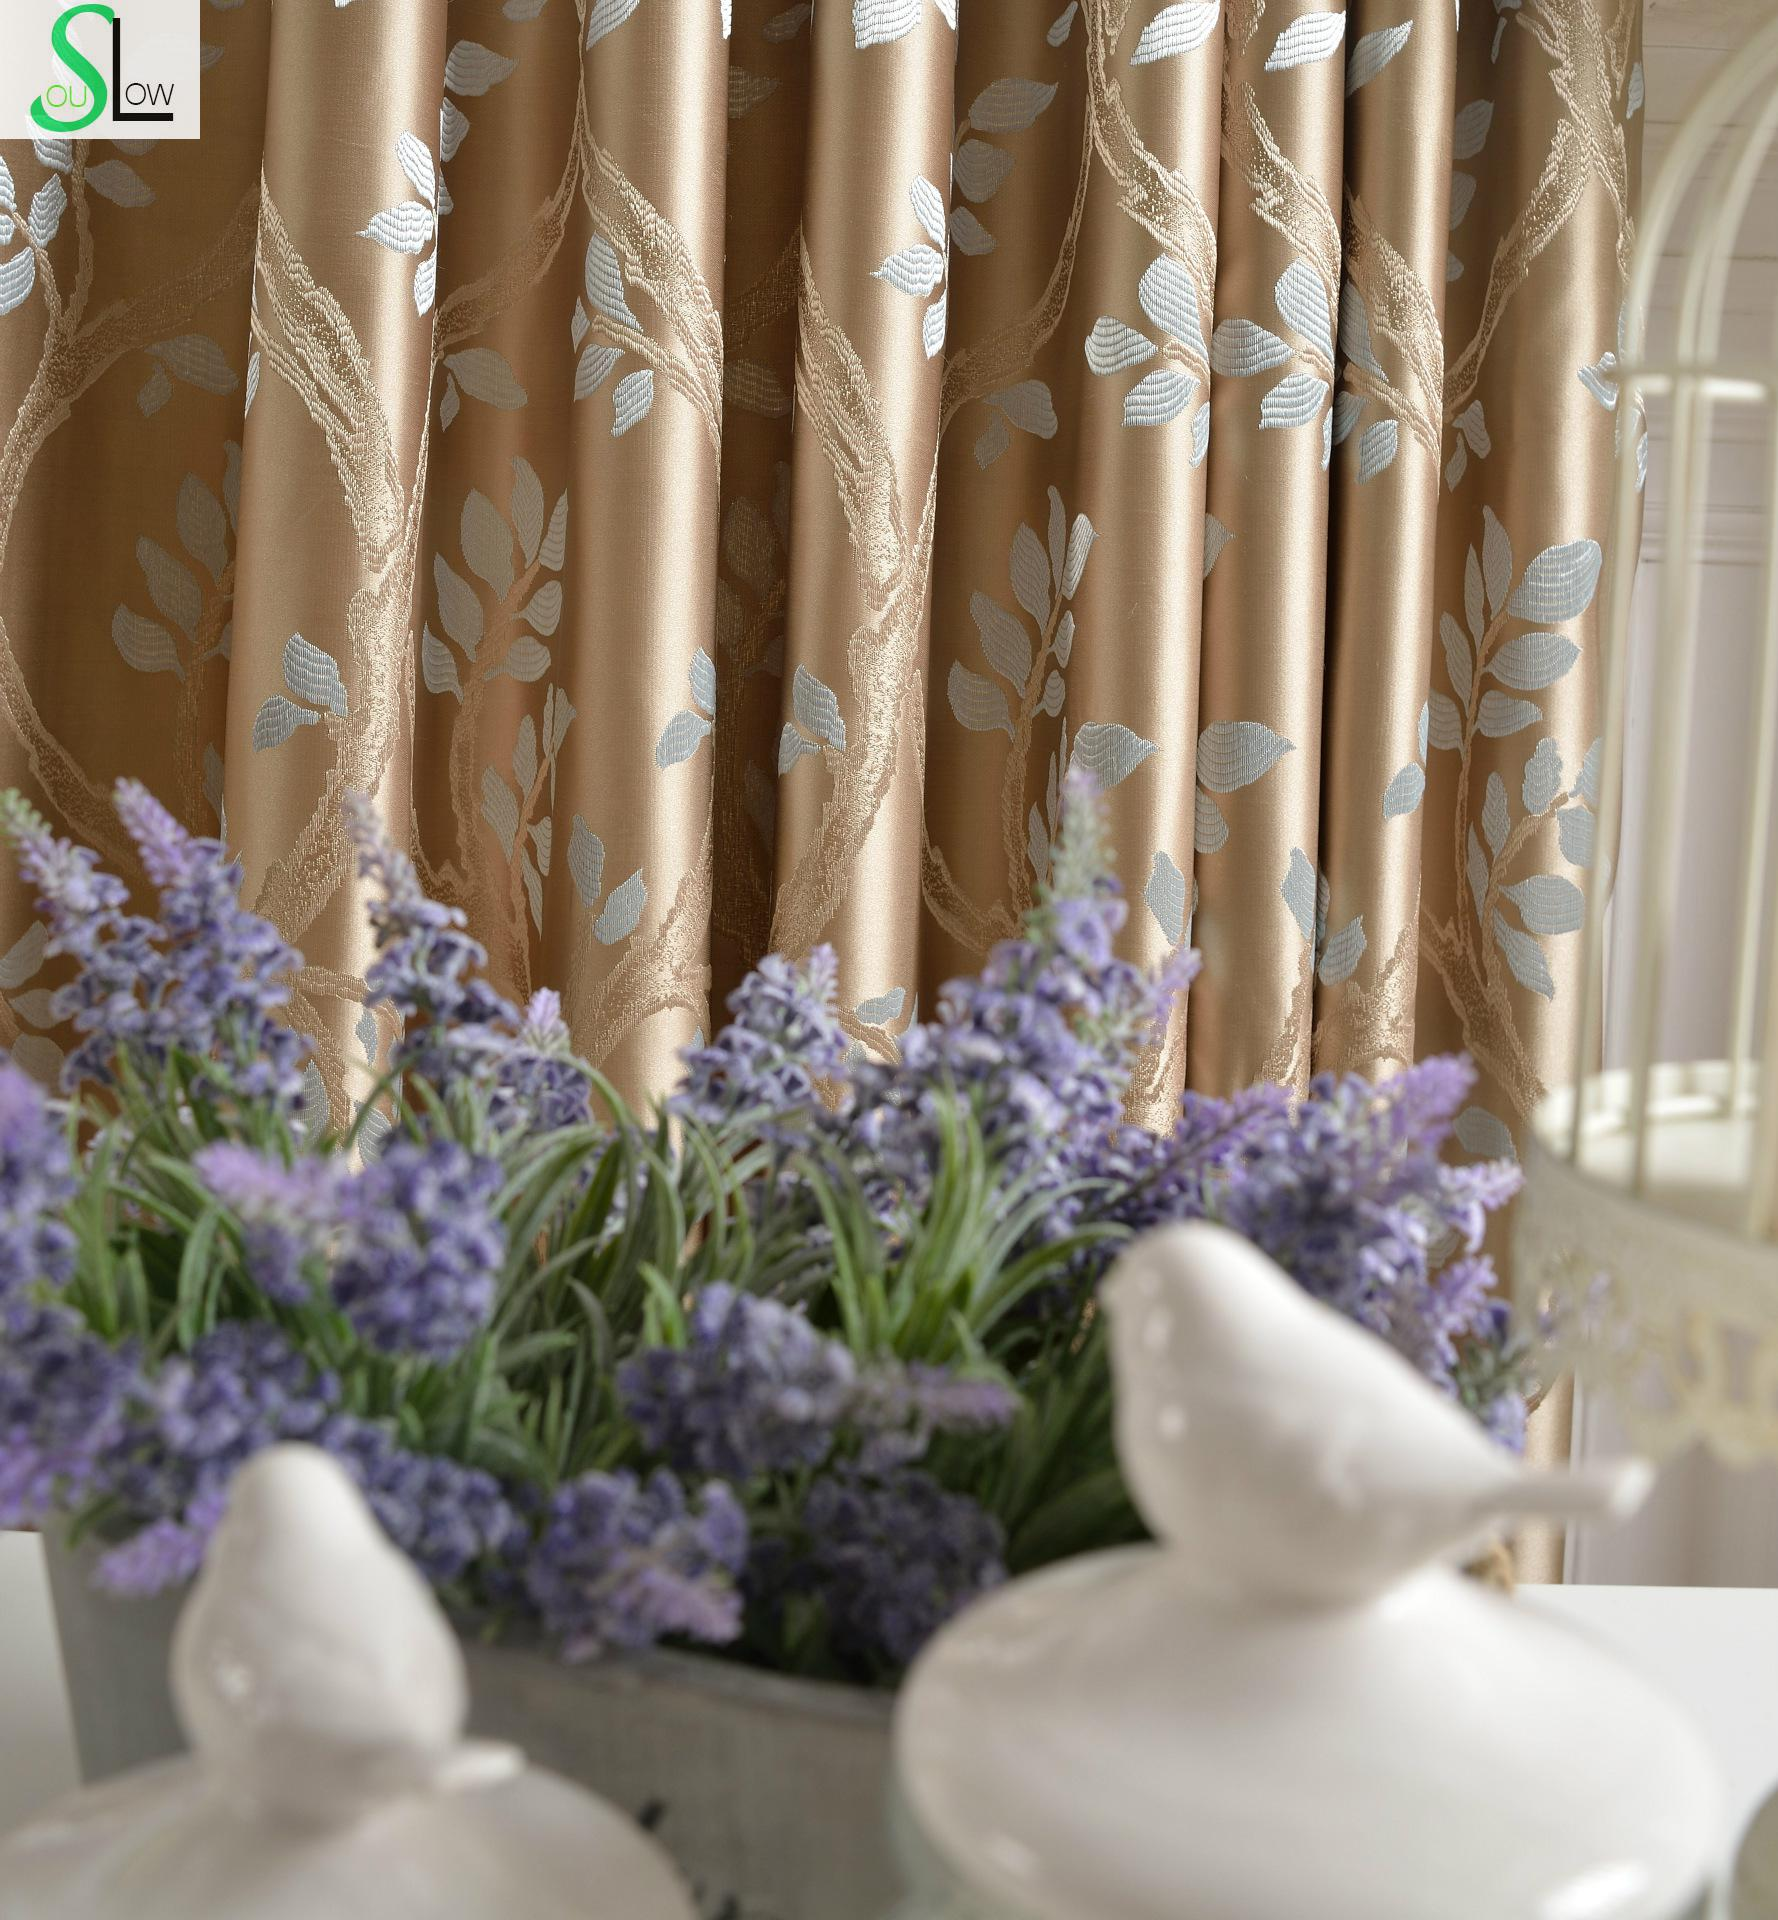 Blackout curtains for bedroom - Peach High Precision Jacquard Curtains French Window Leaves Pastoral For Living Room Blackout Bedroom Cortinas Cocina Kitchen